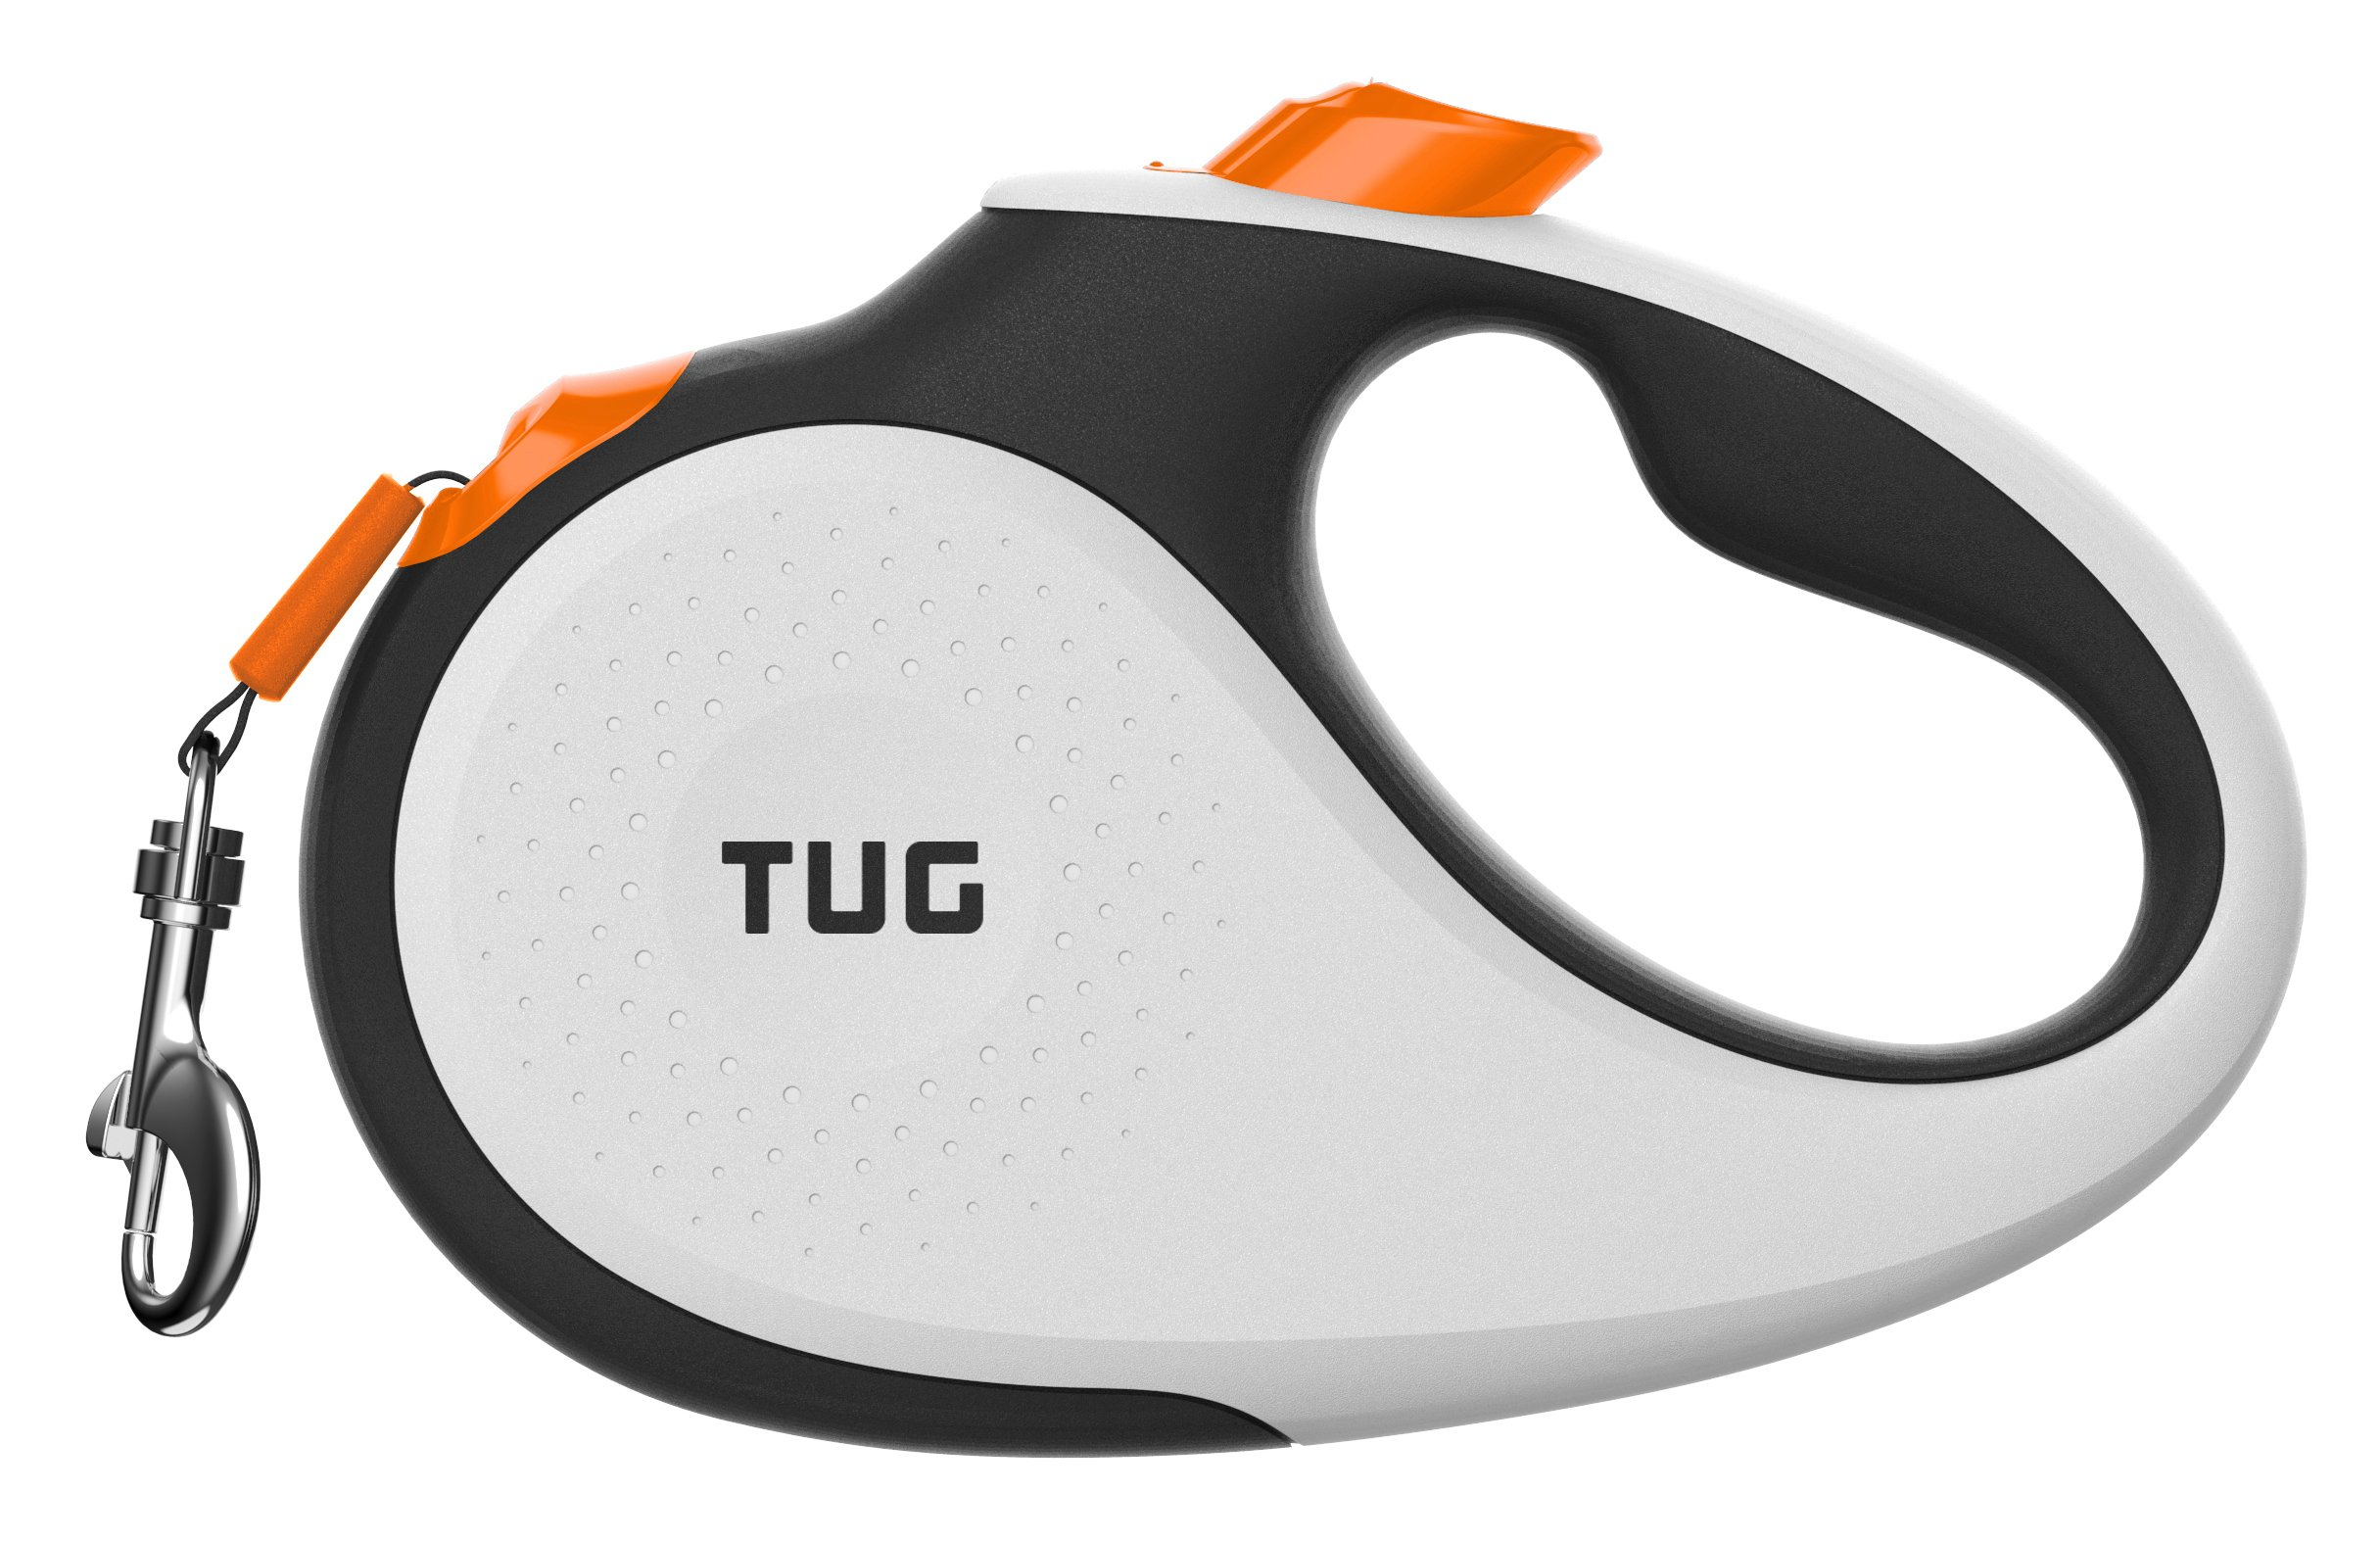 TUG Patented 360° Tangle-Free, Small Retractable Dog Leash with Anti-Slip Handle; 16 ft Strong Nylon Tape/Ribbon; One-Handed Brake, Pause, Lock (White/Orange) by TUG (Image #1)